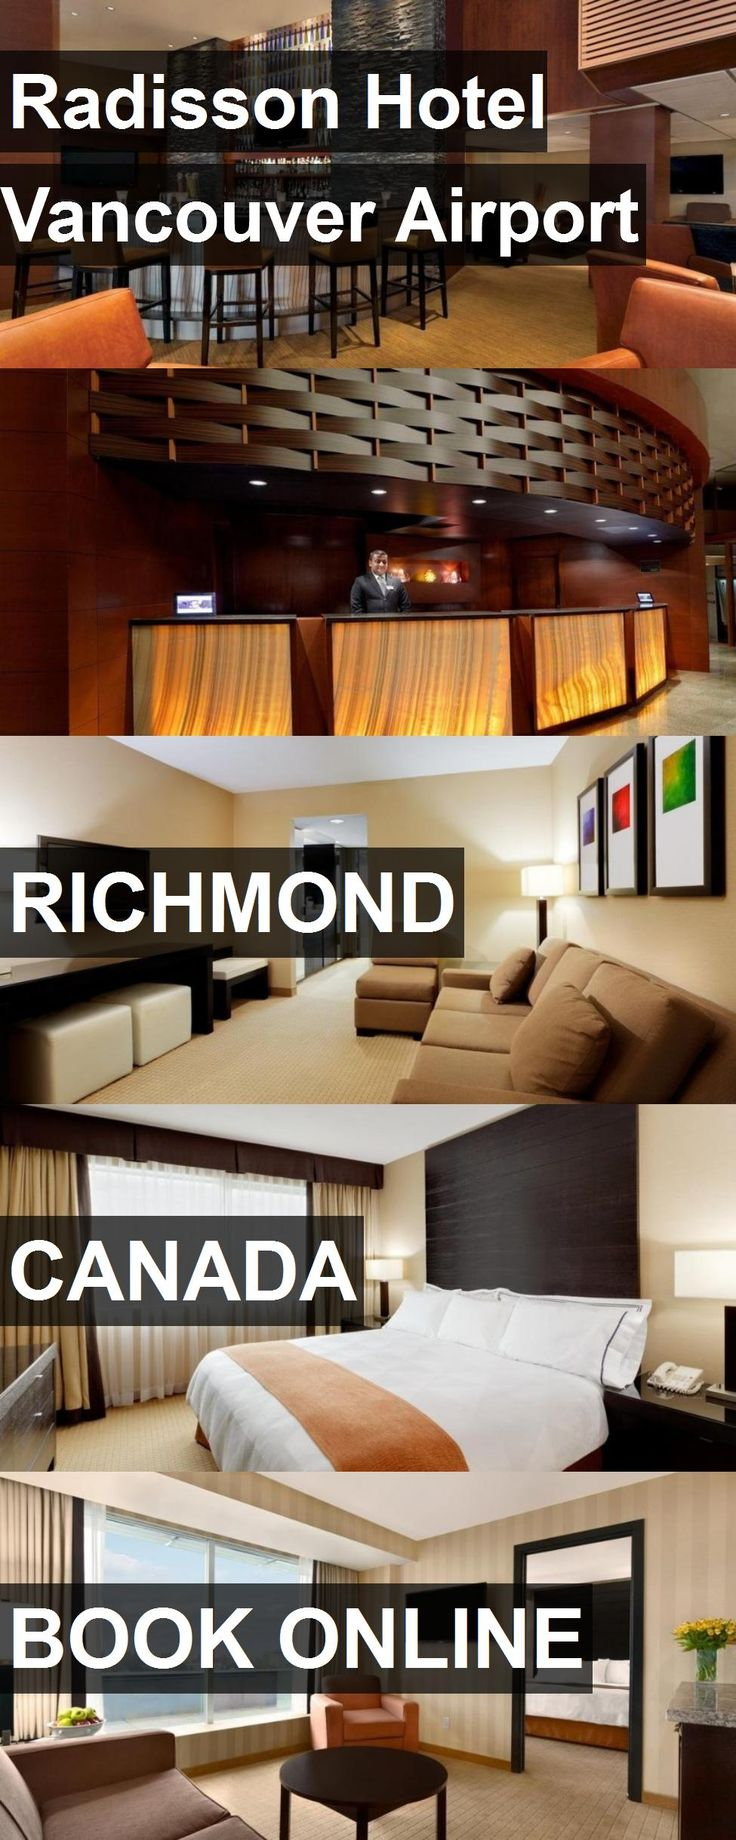 Hotel Radisson Hotel Vancouver Airport in Richmond, Canada. For more information, photos, reviews and best prices please follow the link. #Canada #Richmond #RadissonHotelVancouverAirport #hotel #travel #vacation